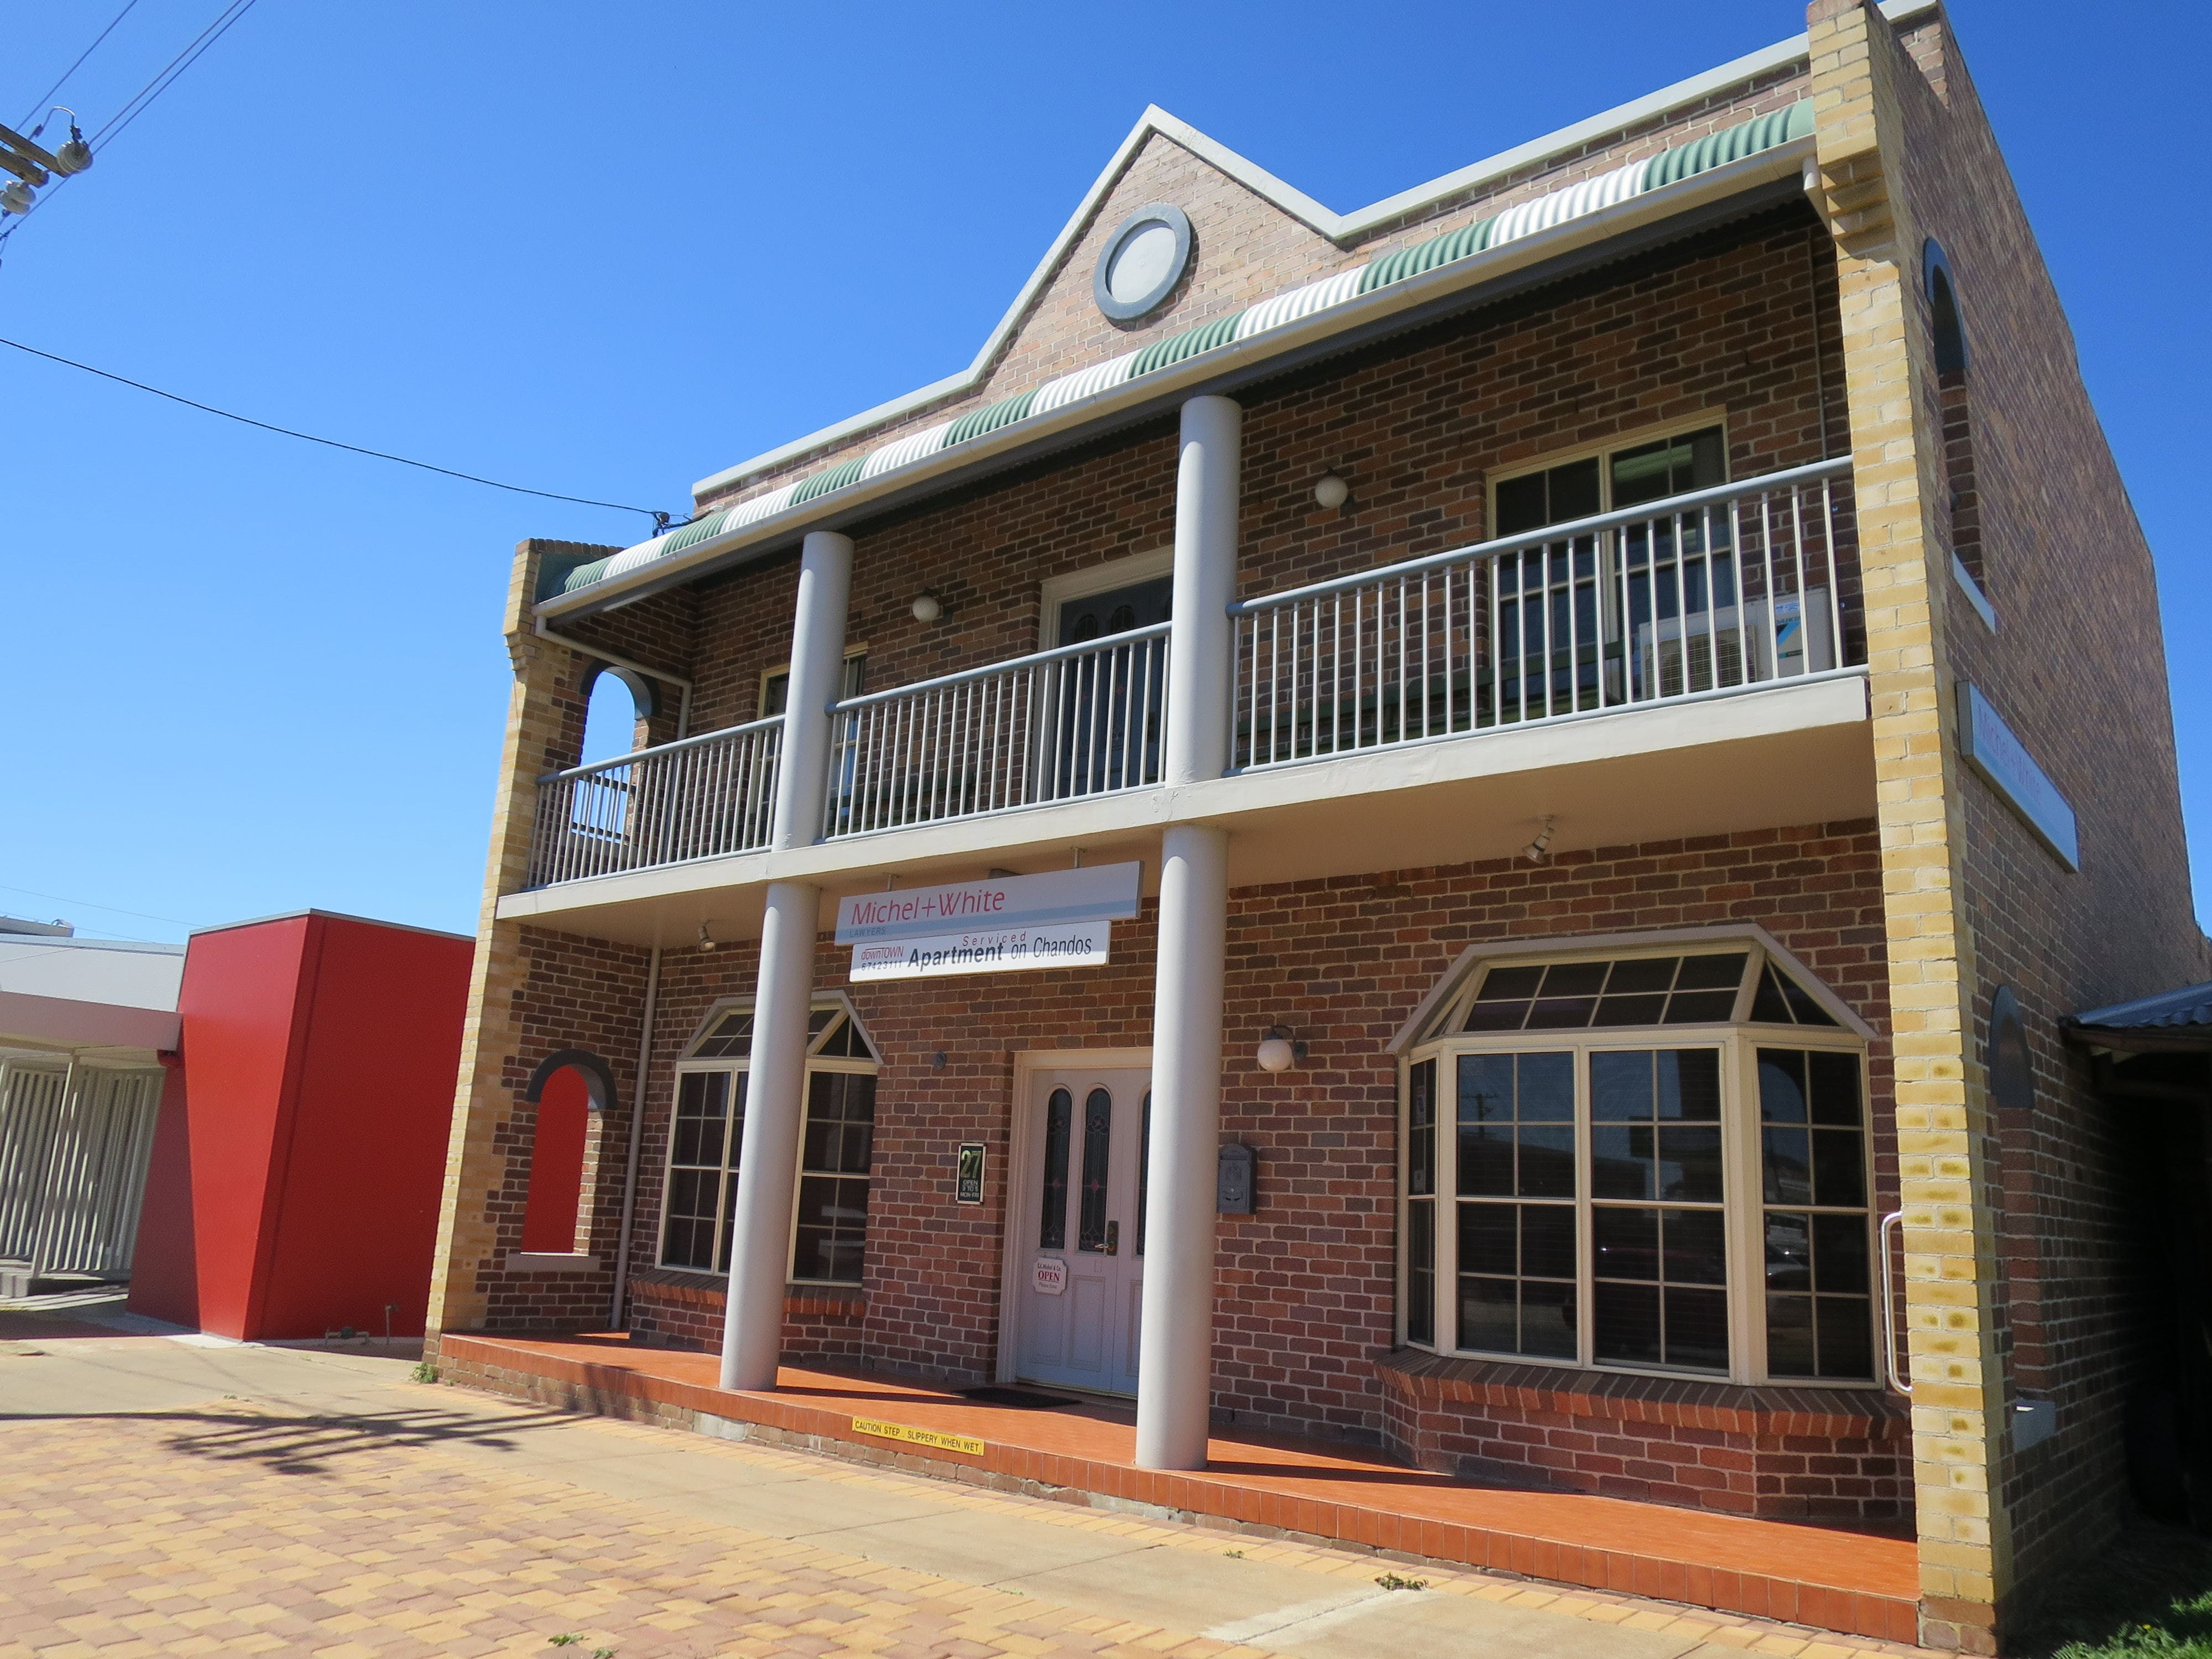 Downtown Apartment on Chandos - Accommodation Yamba